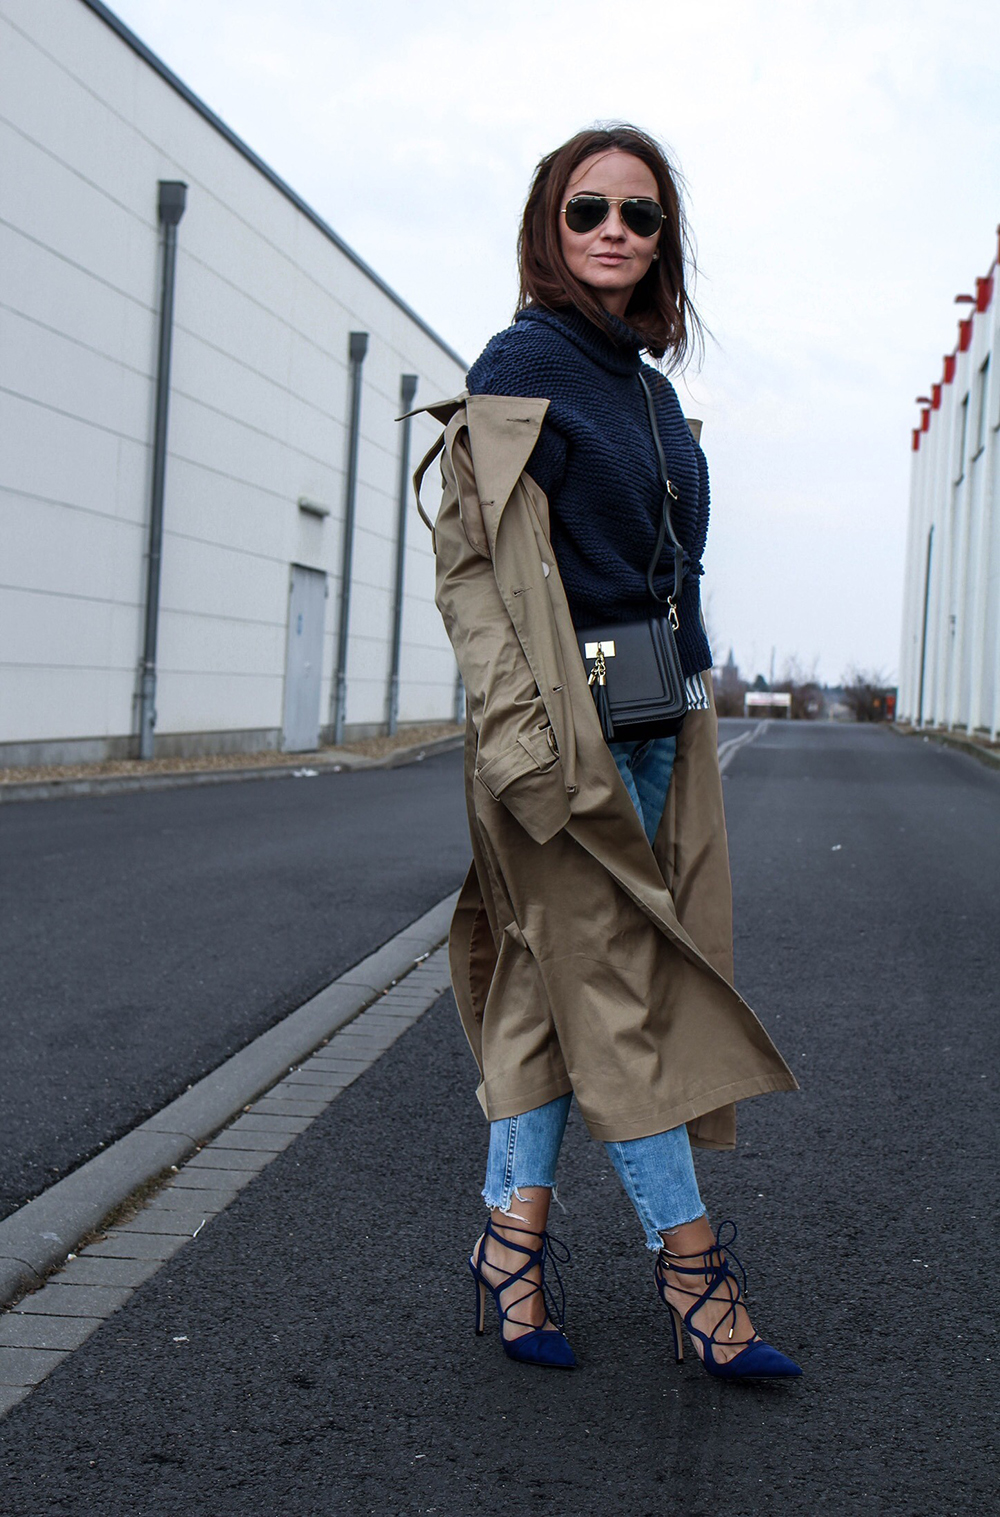 Fashioncircuz by Jenny fashioncircuz_jennifer_kemen_outfit_inspiration_showroom_pullover_and_asos_trenchcoat-kopie-4 OUTFIT| OH TRENCHCOAT, MY LOVE